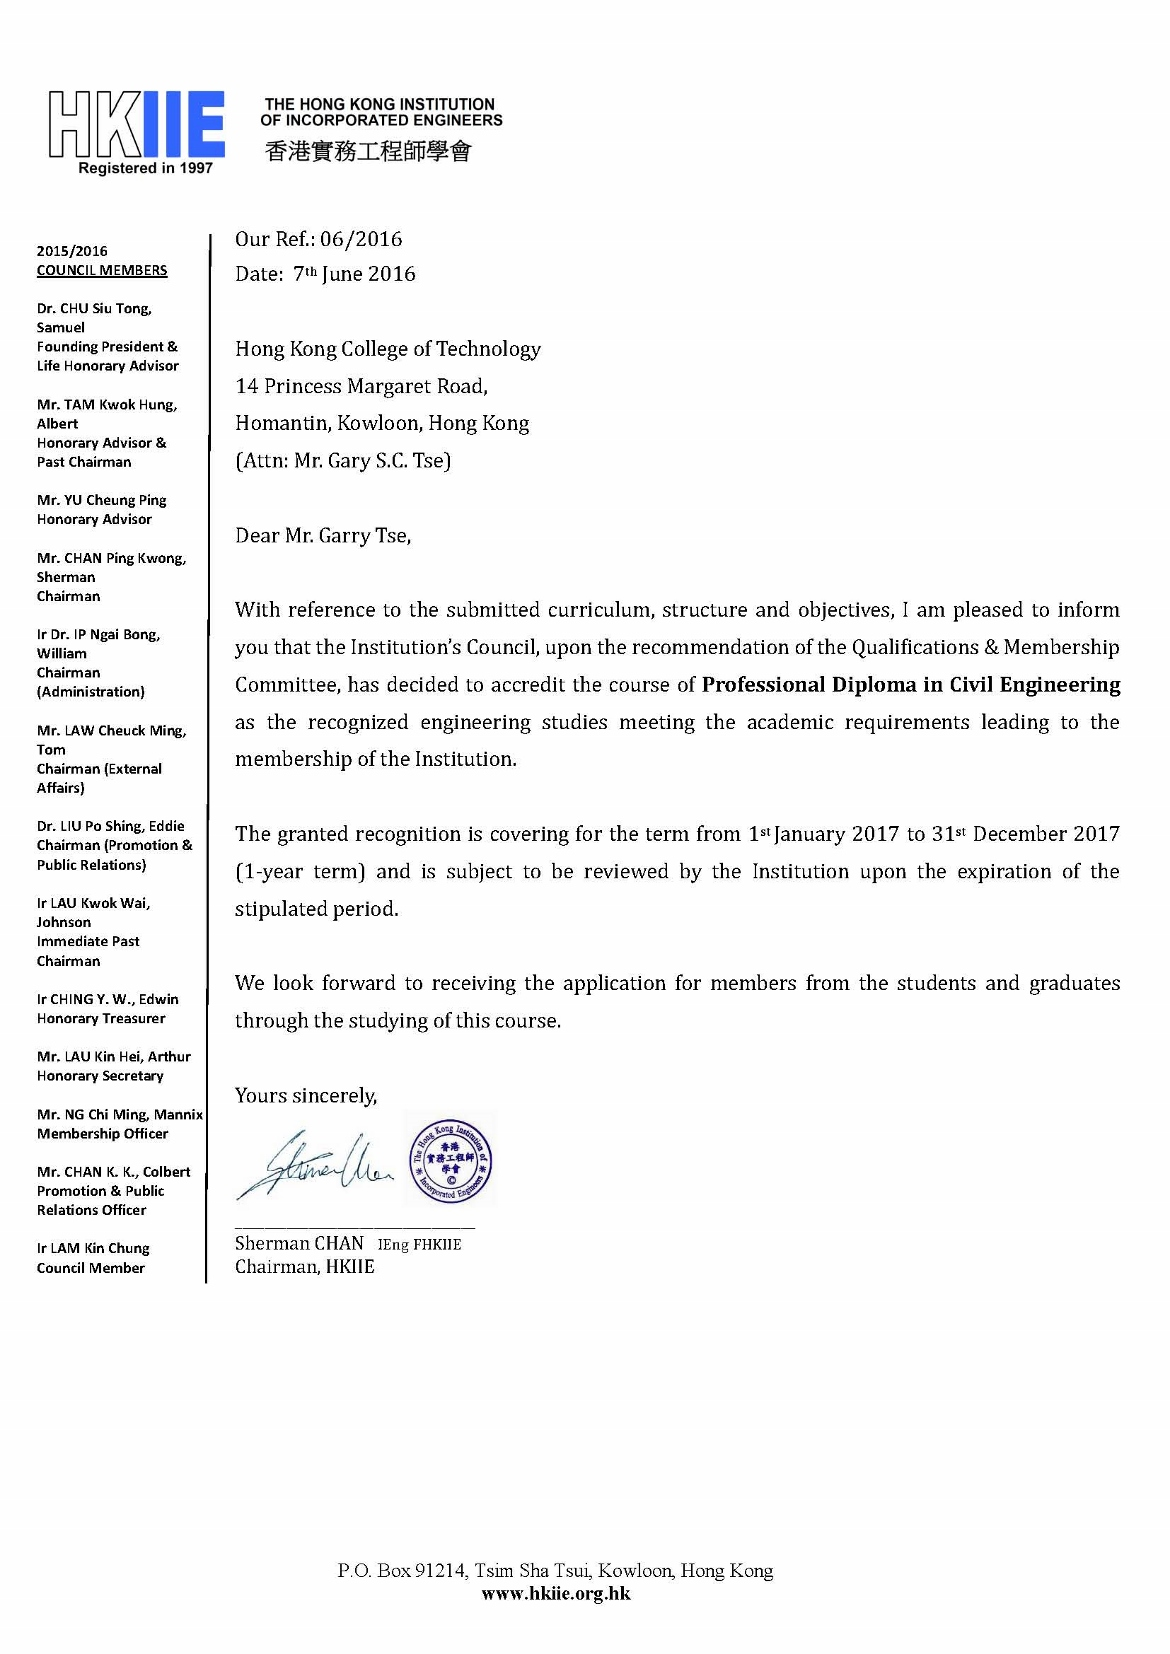 HKCT Accredited Course Letter 1170x1654